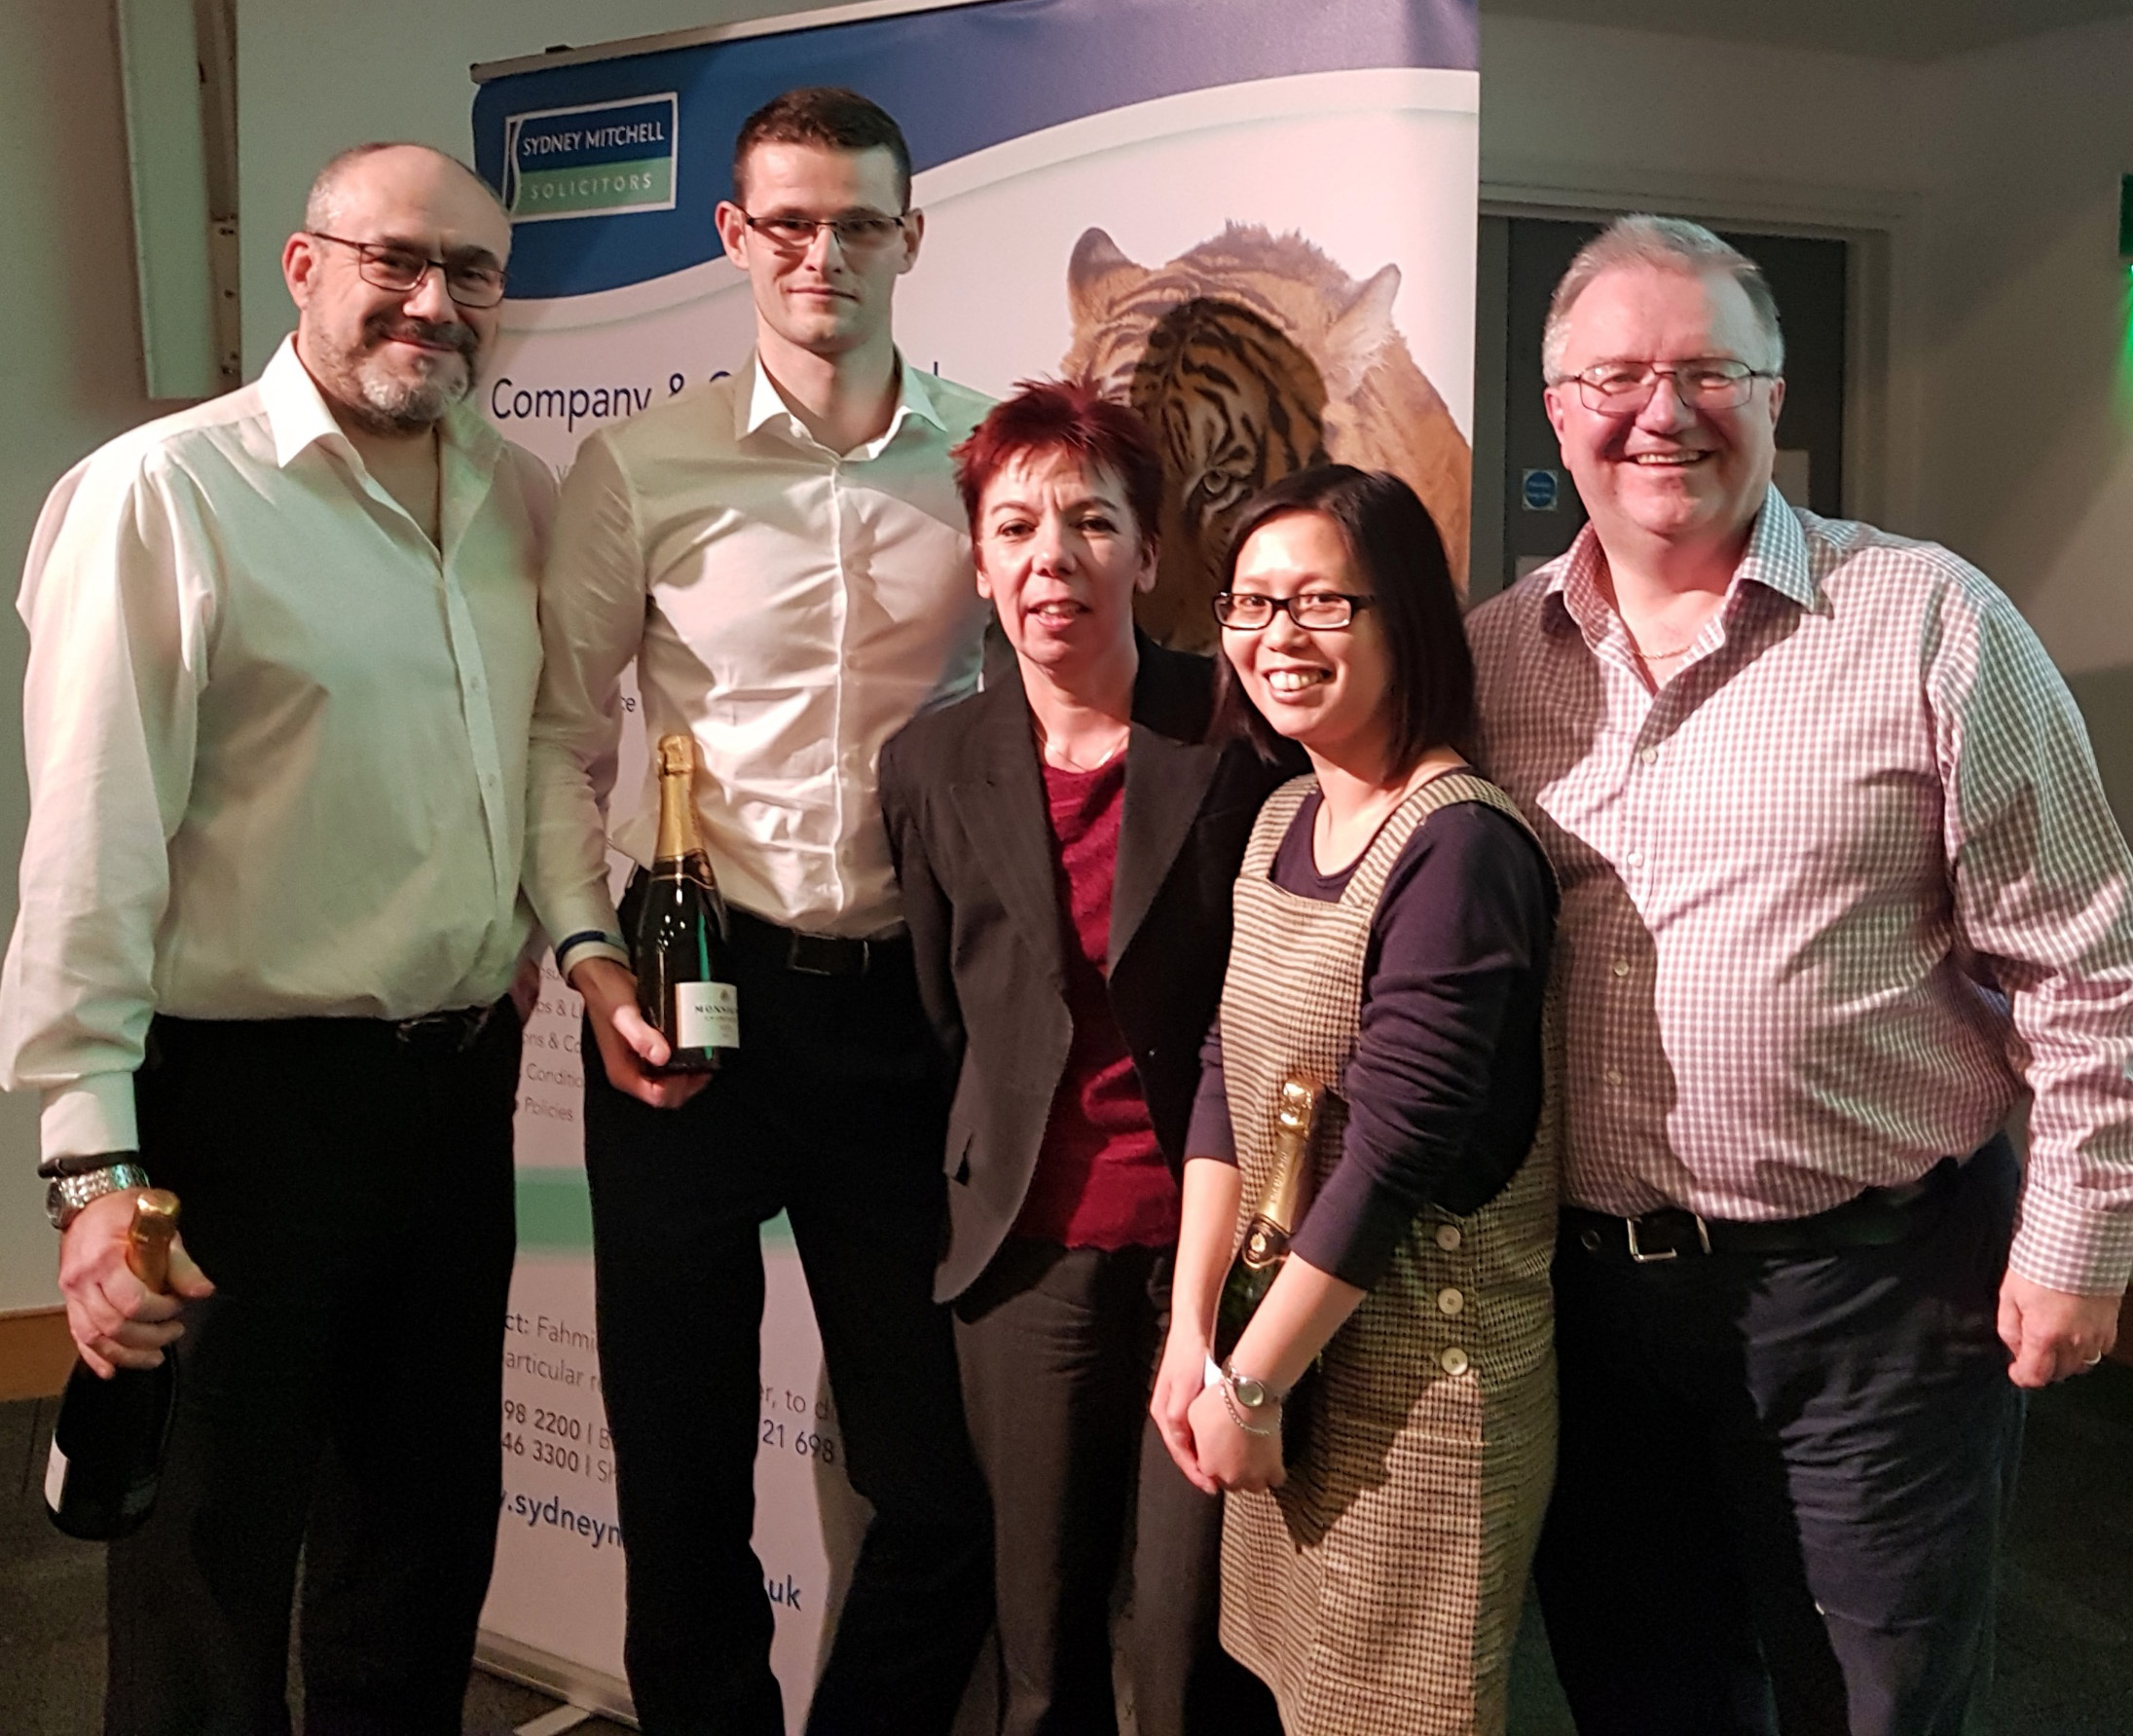 Sydney Mitchell Charity Quiz Winners - Dains Chartered Accountants